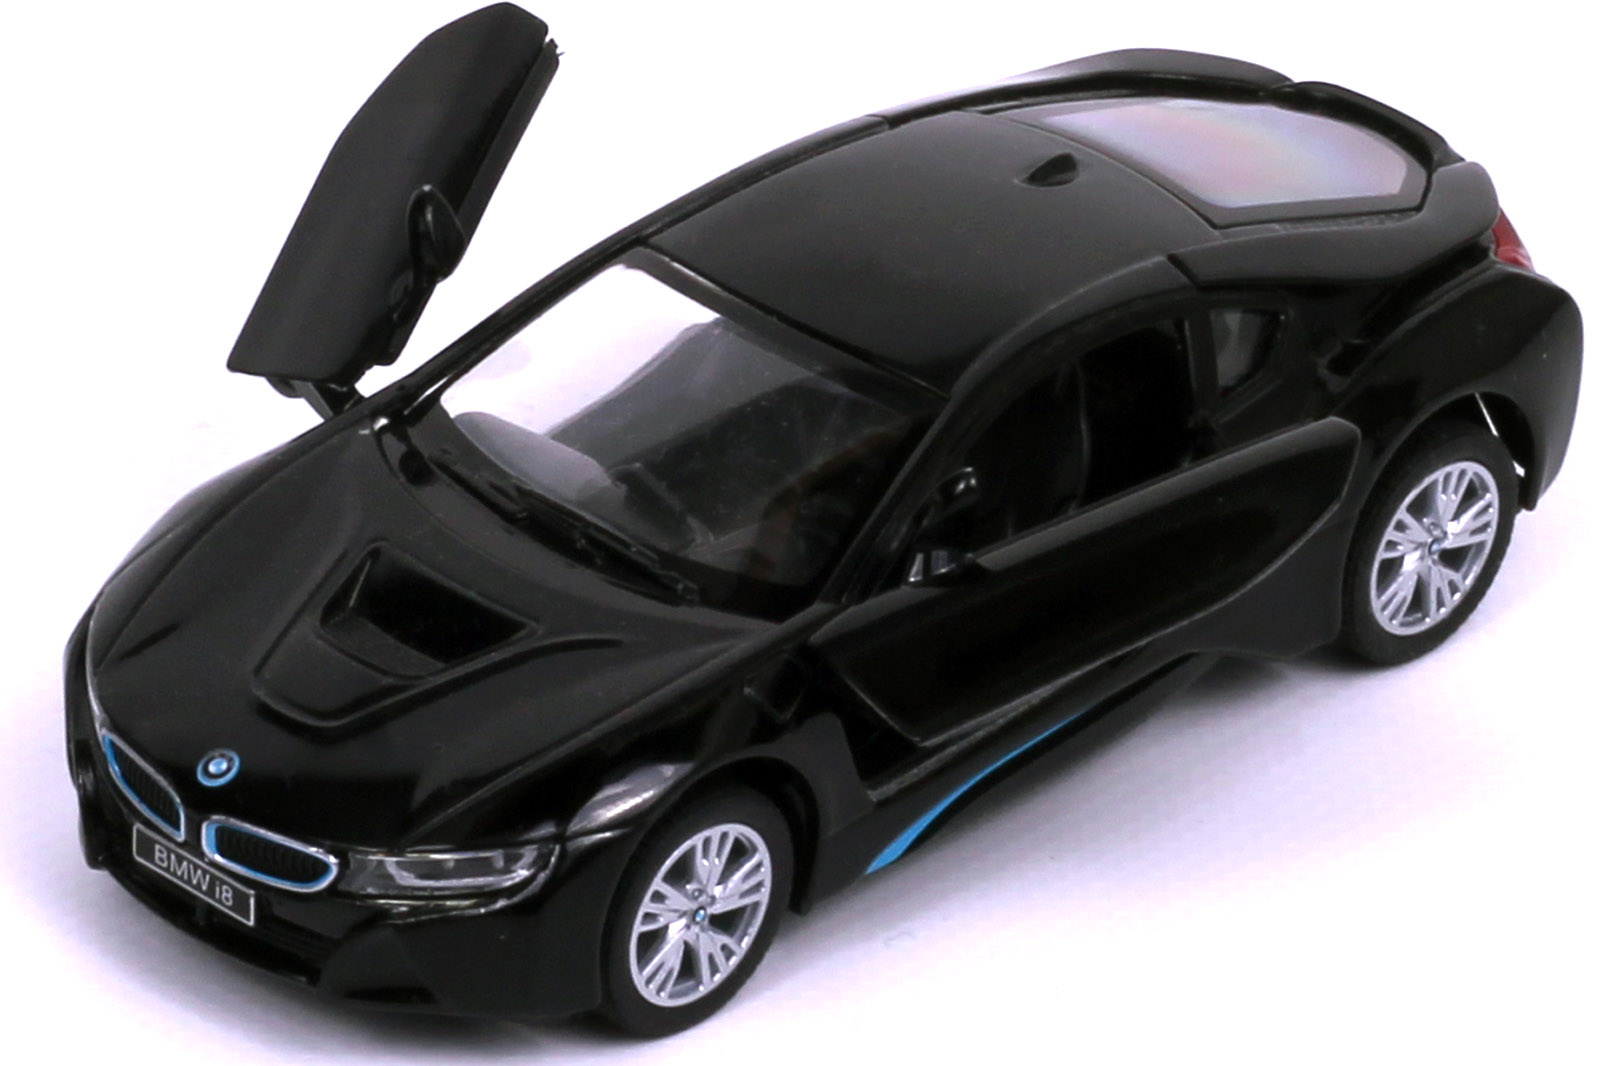 rastar 1 43 bmw i8 elektroauto modell schwarz ebay. Black Bedroom Furniture Sets. Home Design Ideas